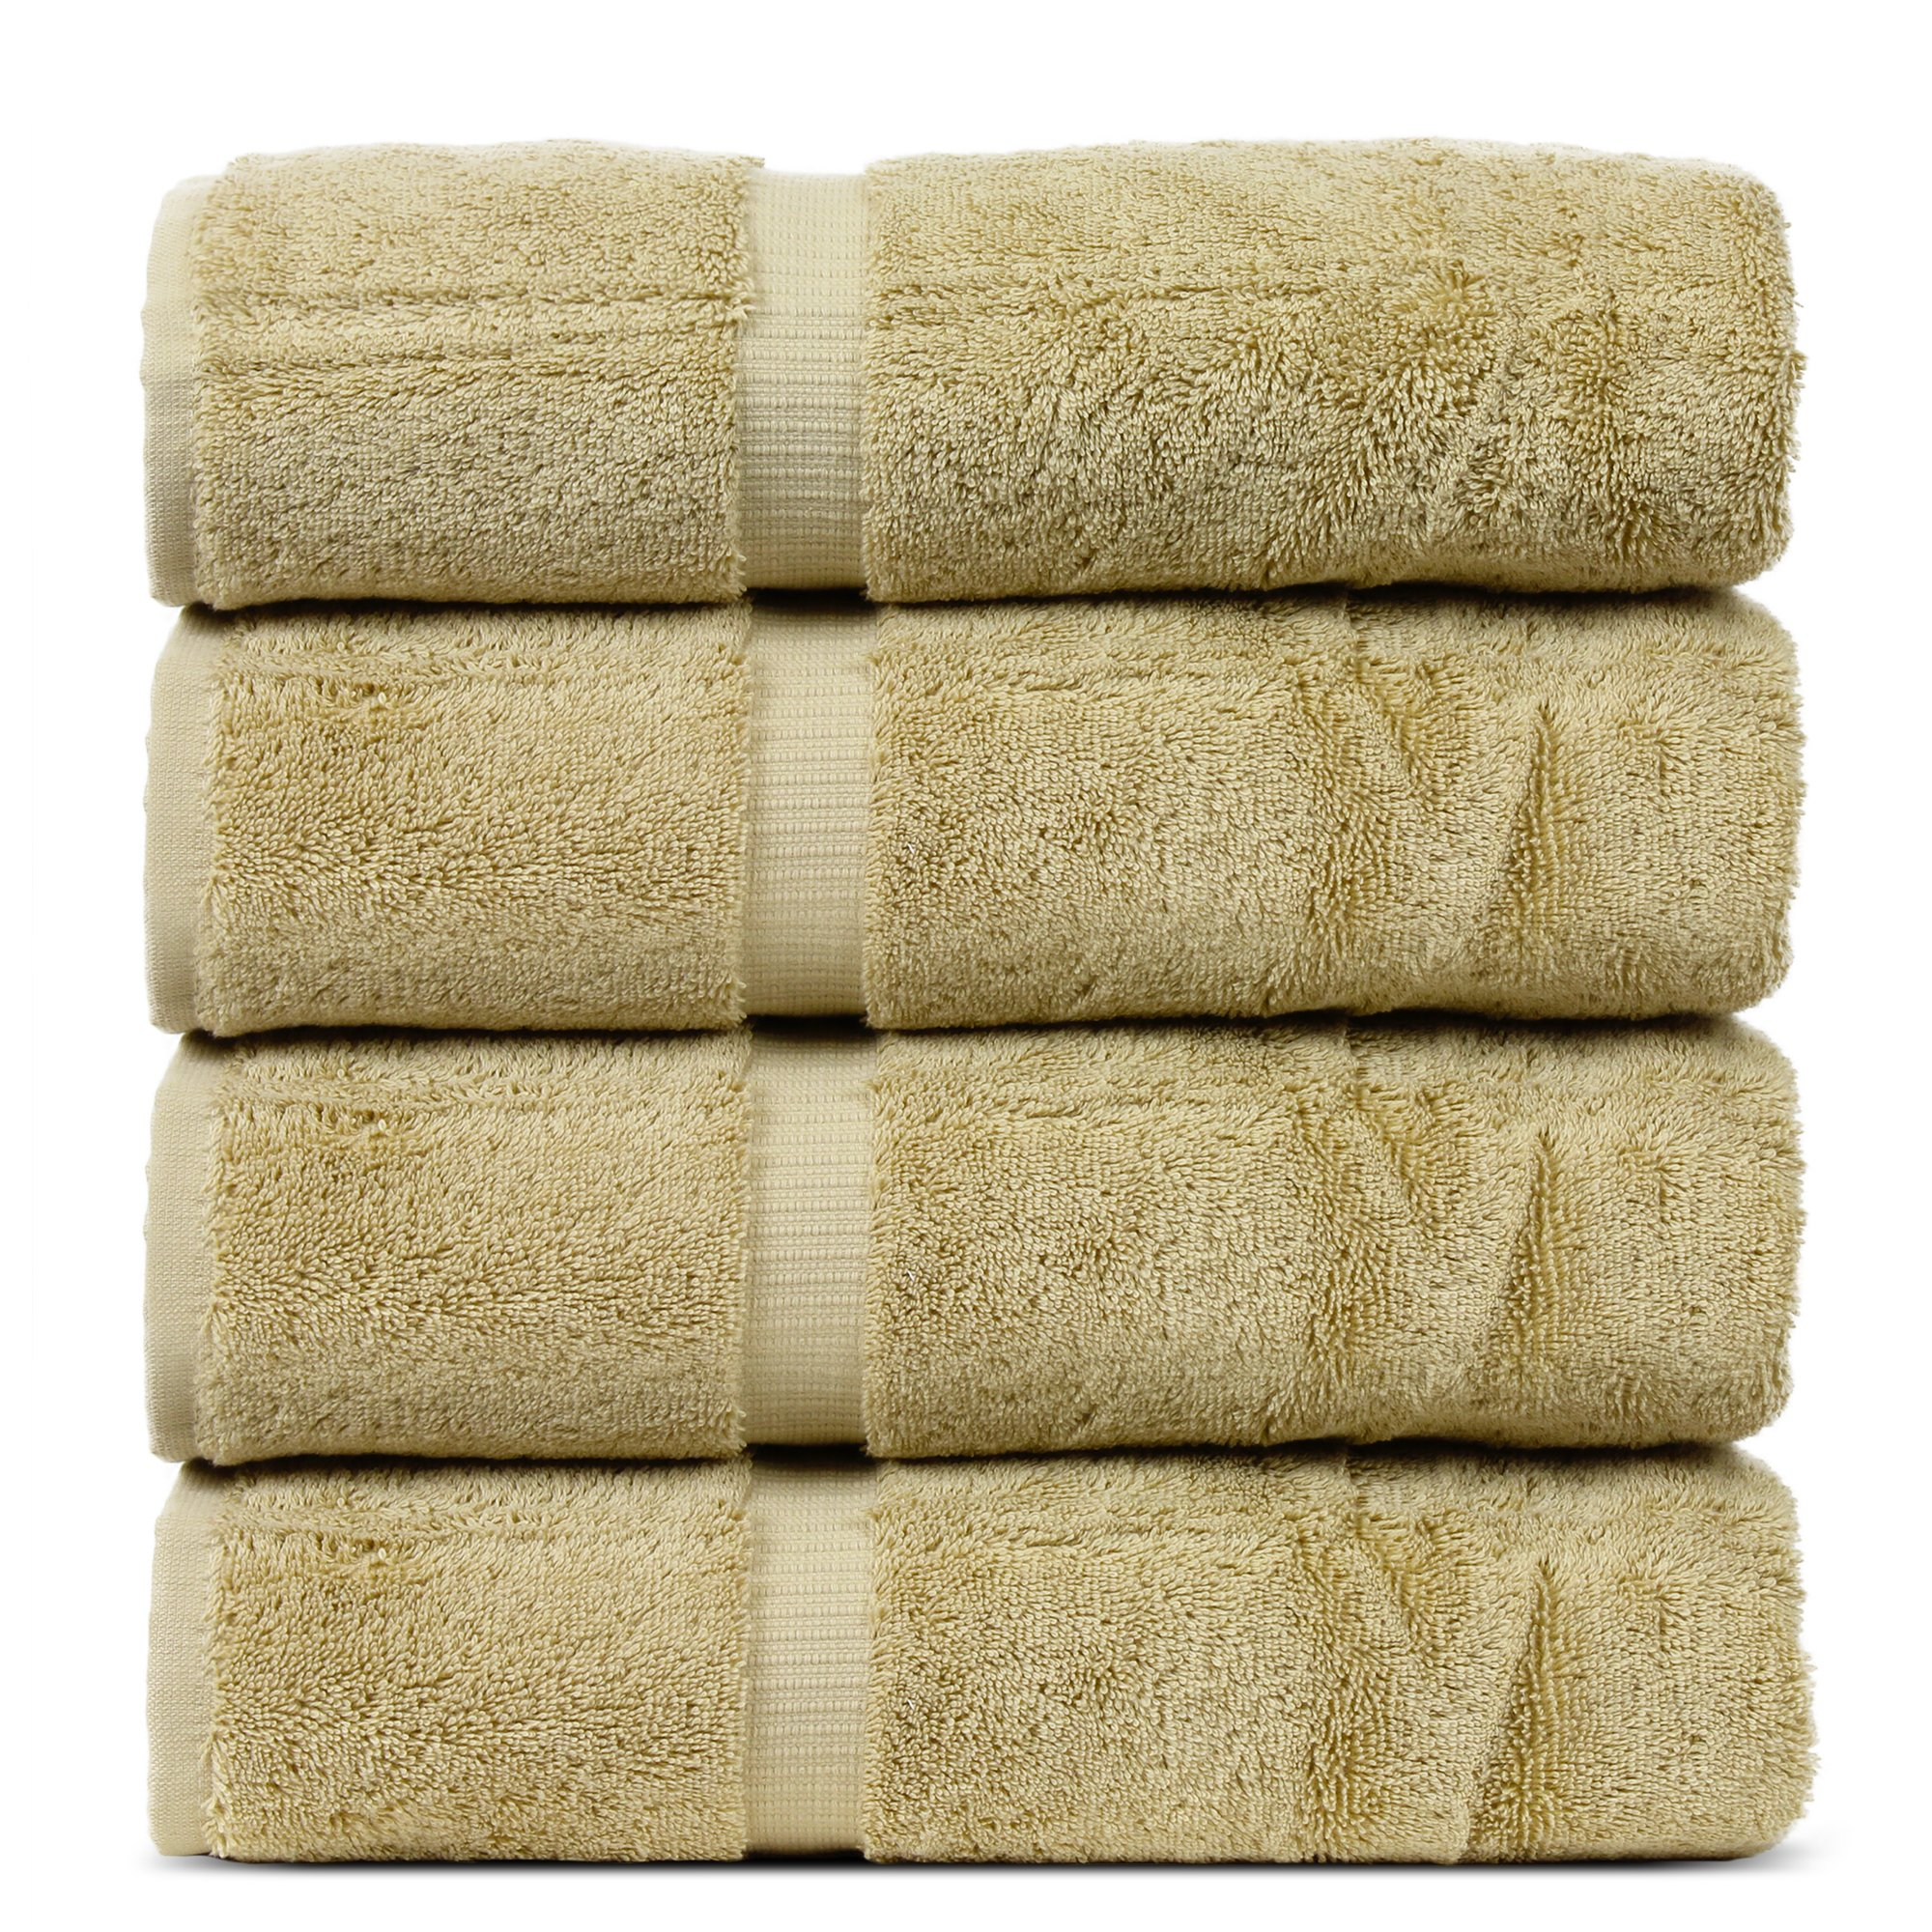 BC BARE COTTON Luxury Hotel & Spa Towel Turkish Cotton Bath Towels - Driftwood - Dobby Border - Set of 4